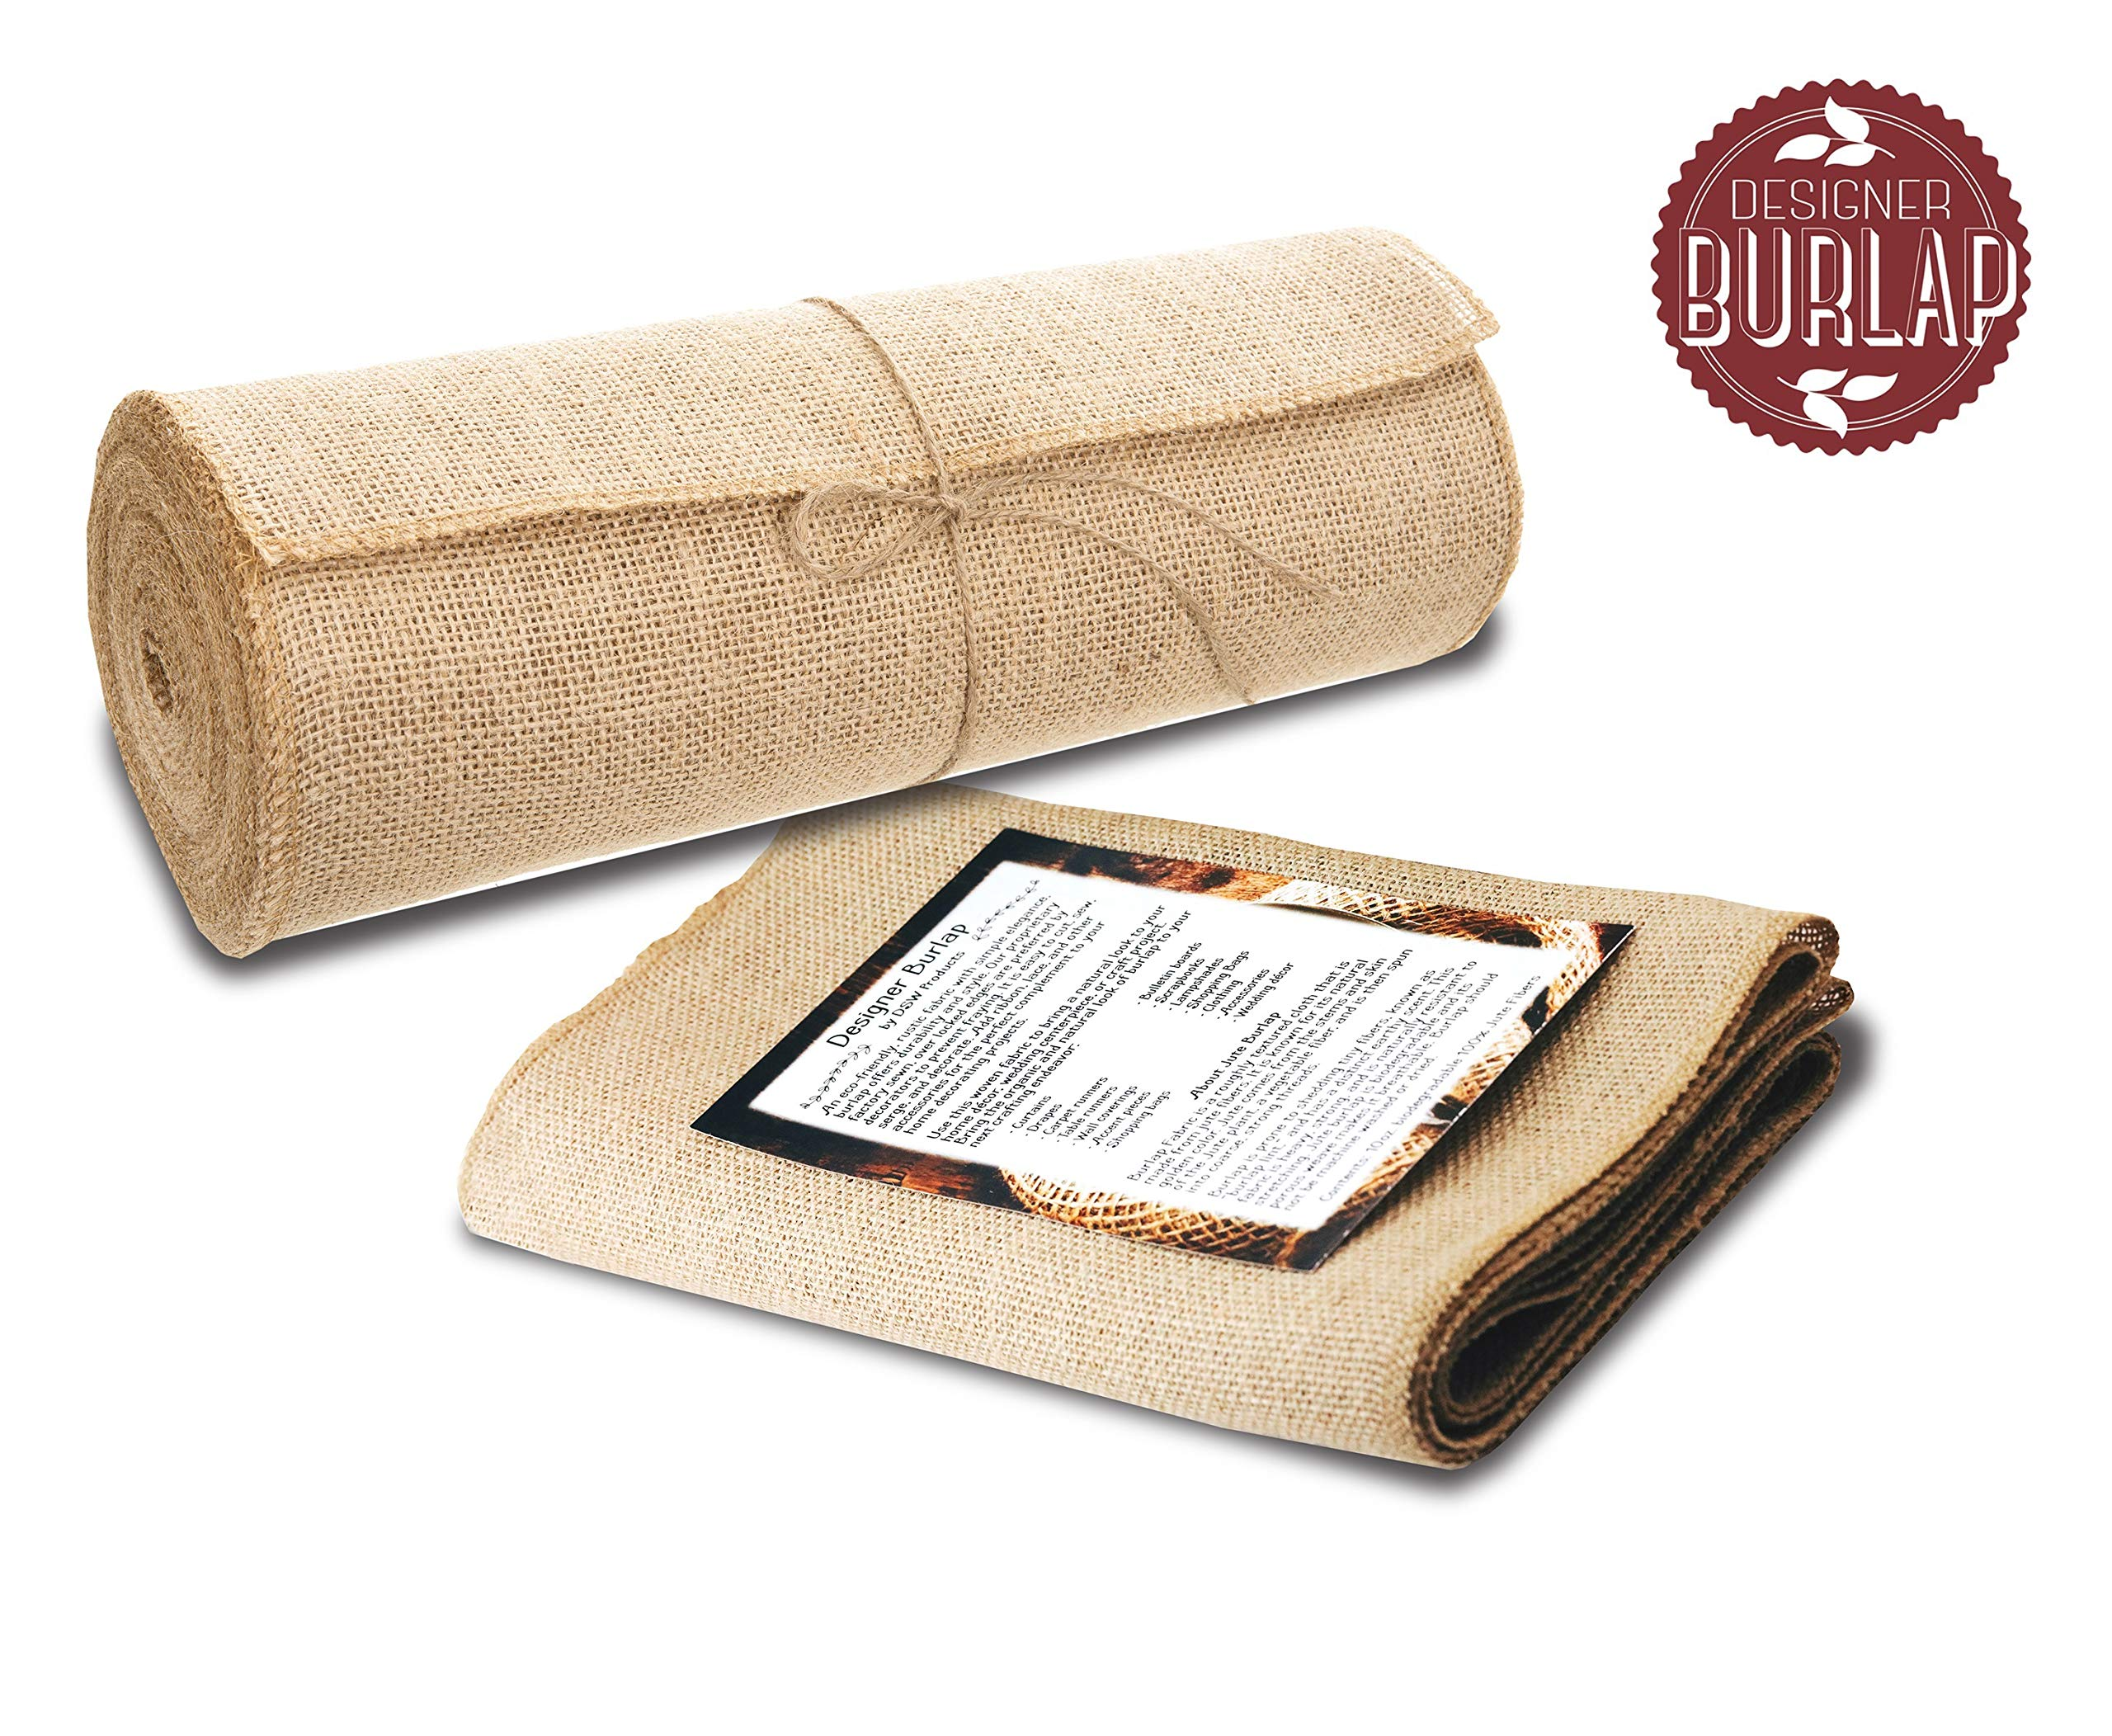 """Burlap Table Runners ~ 12"""" Wide X 10 Yards Long Burlap Roll ~ Burlap Fabric Rolls. A NO-FRAY Burlap Runner with OVERLOCKED and SEWN Edges for Rustic Weddings, Decorations and Crafts!"""